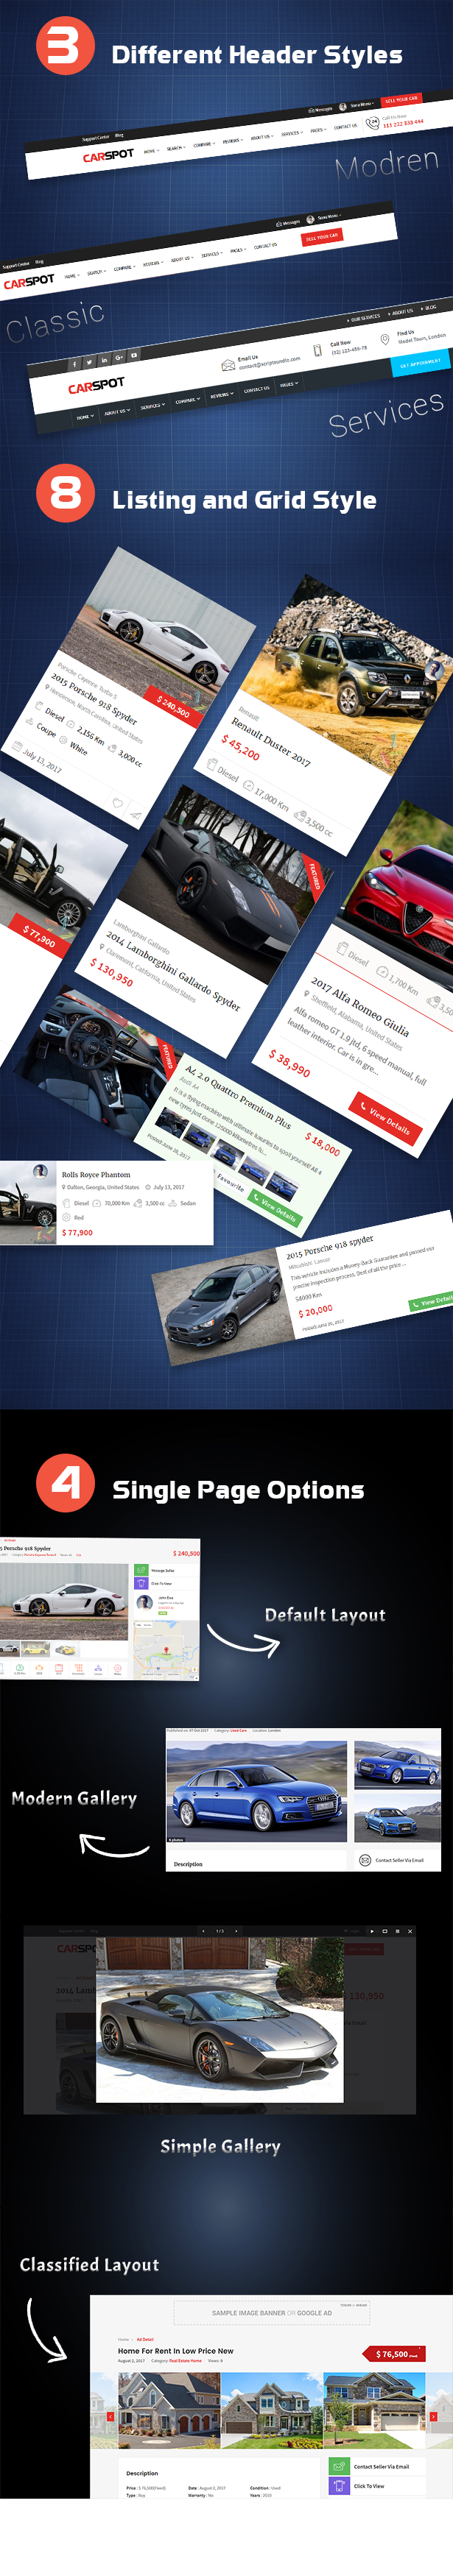 CarSpot - Car Services & Automotive, Dealership, Classifieds WordPress Theme